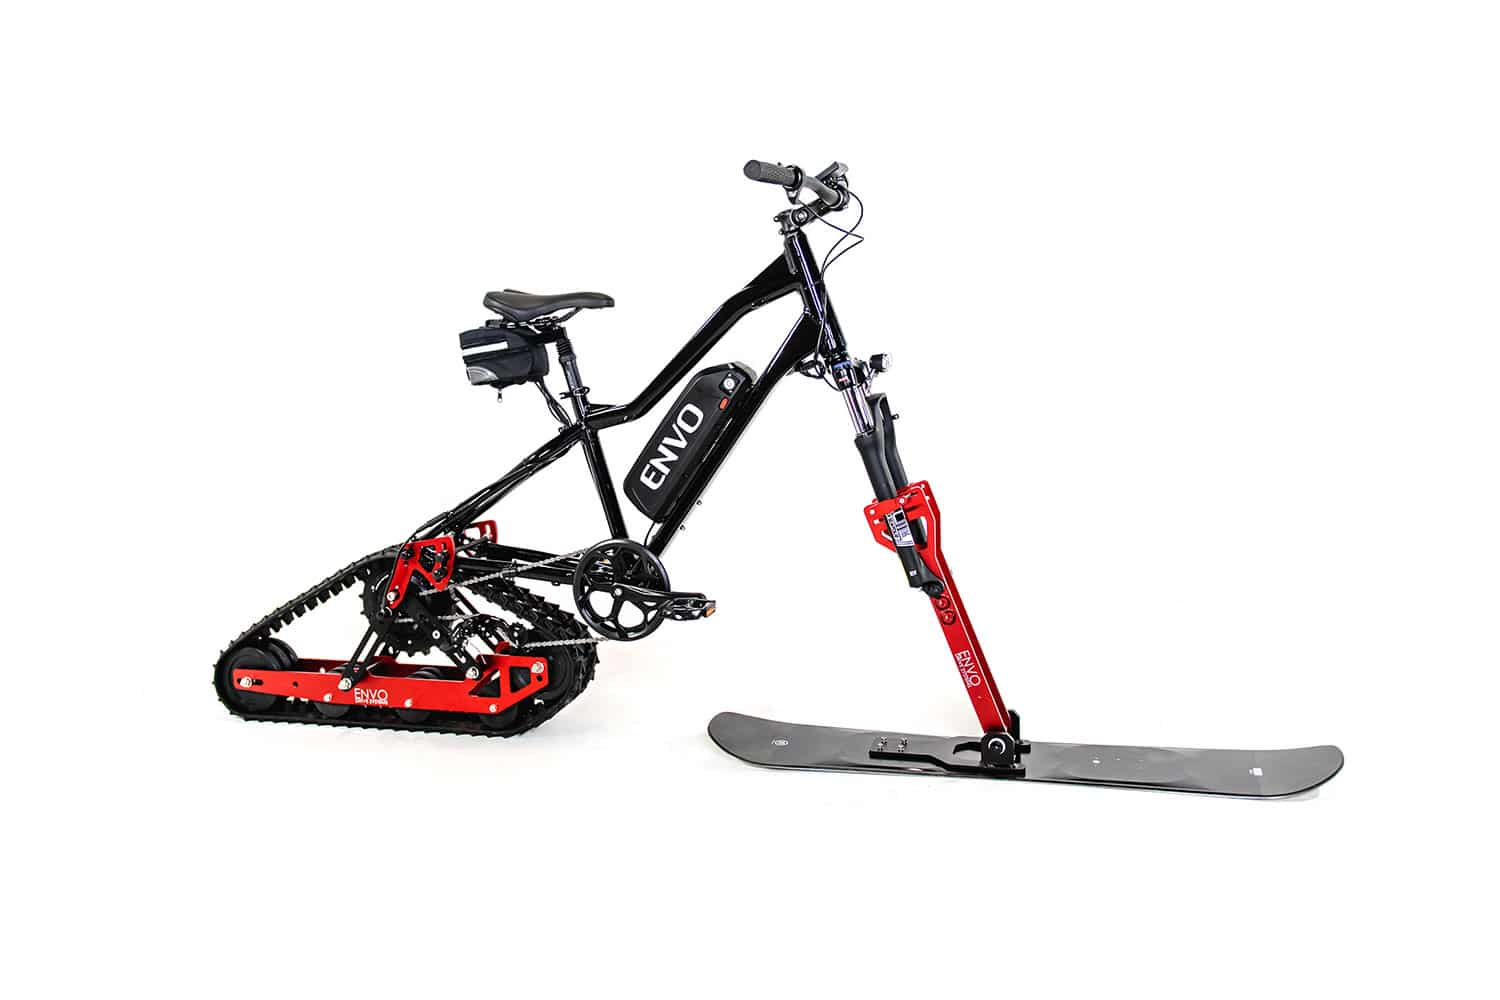 ENVO Electric SnowBike Kit turns mountain bikes into snow-going ebikes